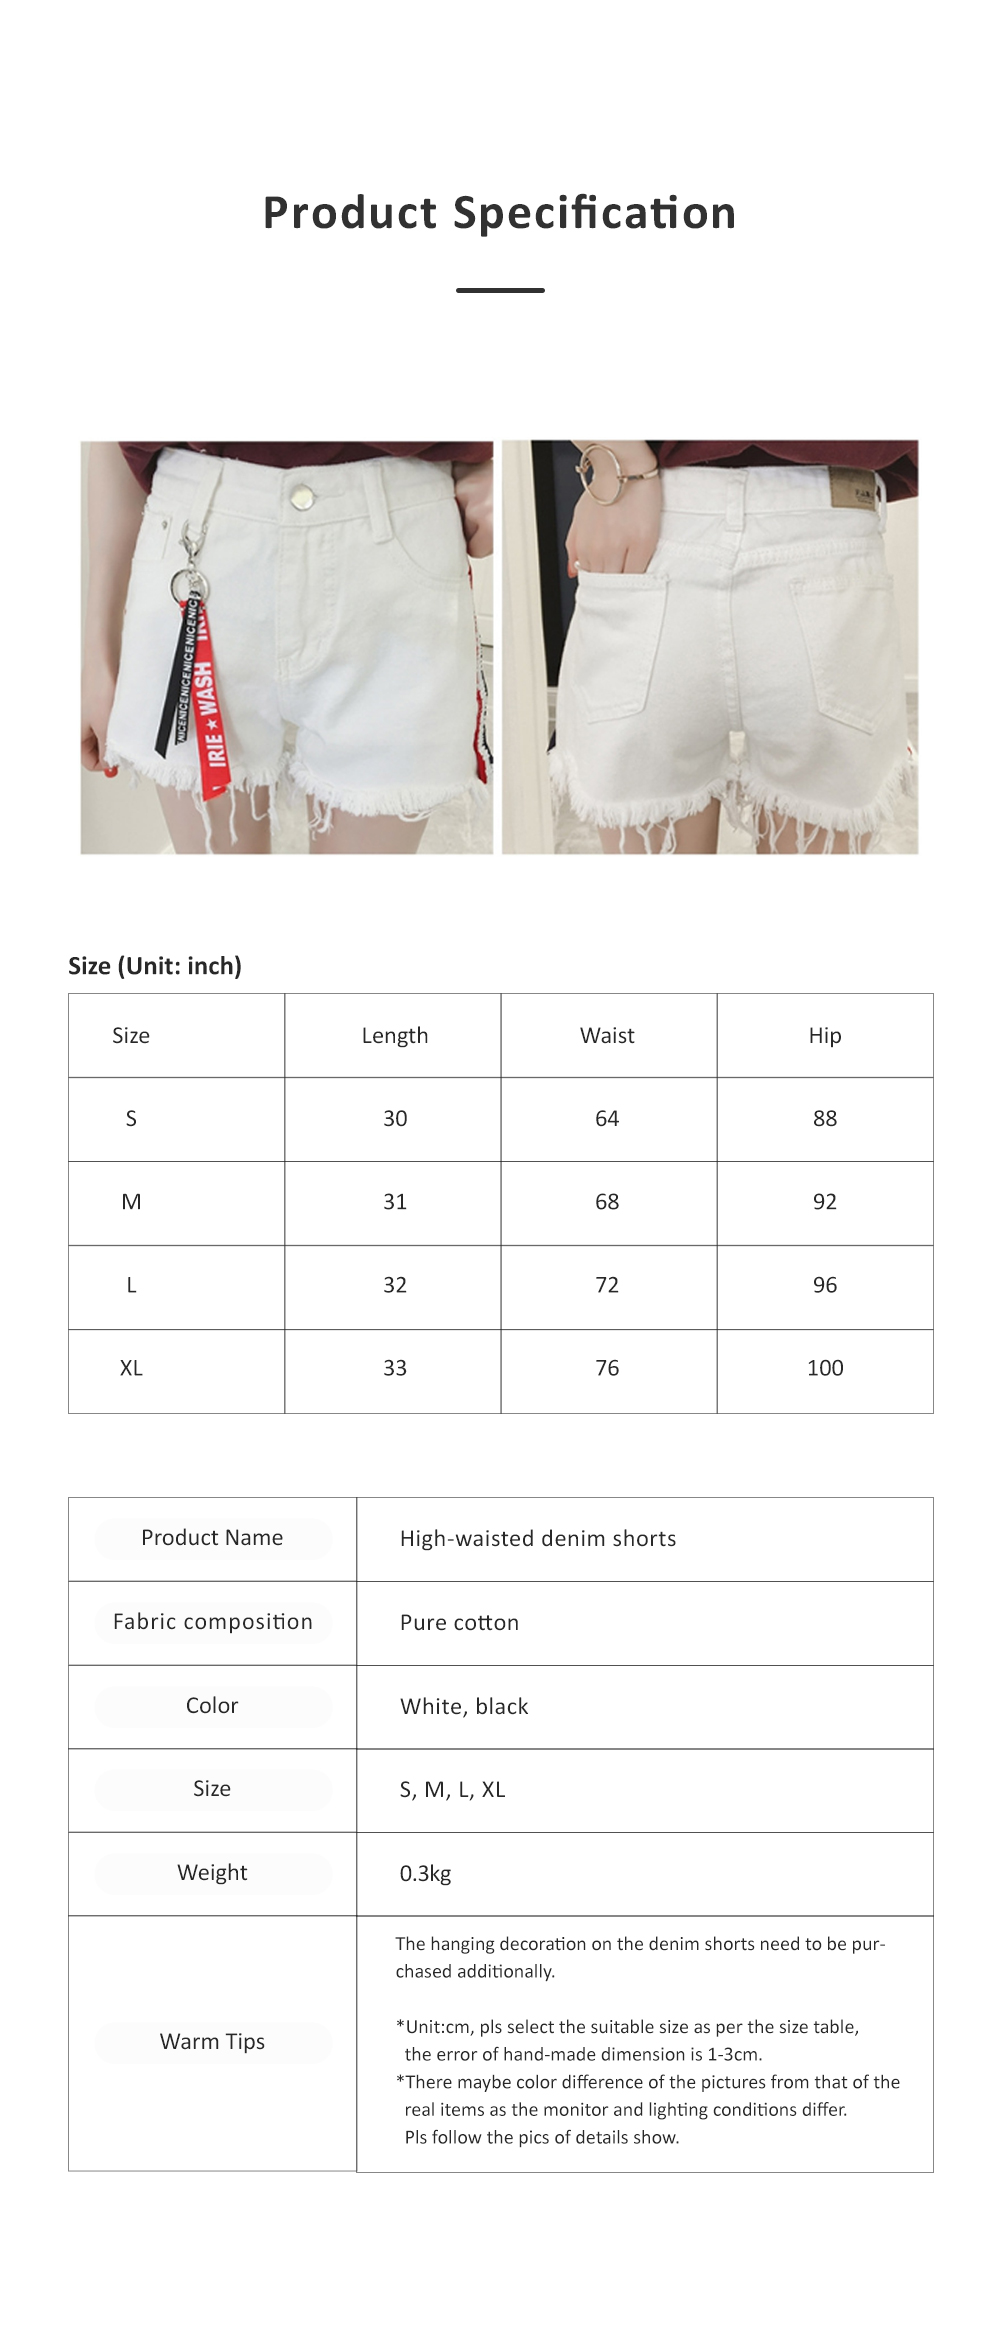 2019 High-waisted Denim Shorts Jeans Pants for Girl Students Wear Summer Loose Version Short Pants in Pure Black Color or White Color 6